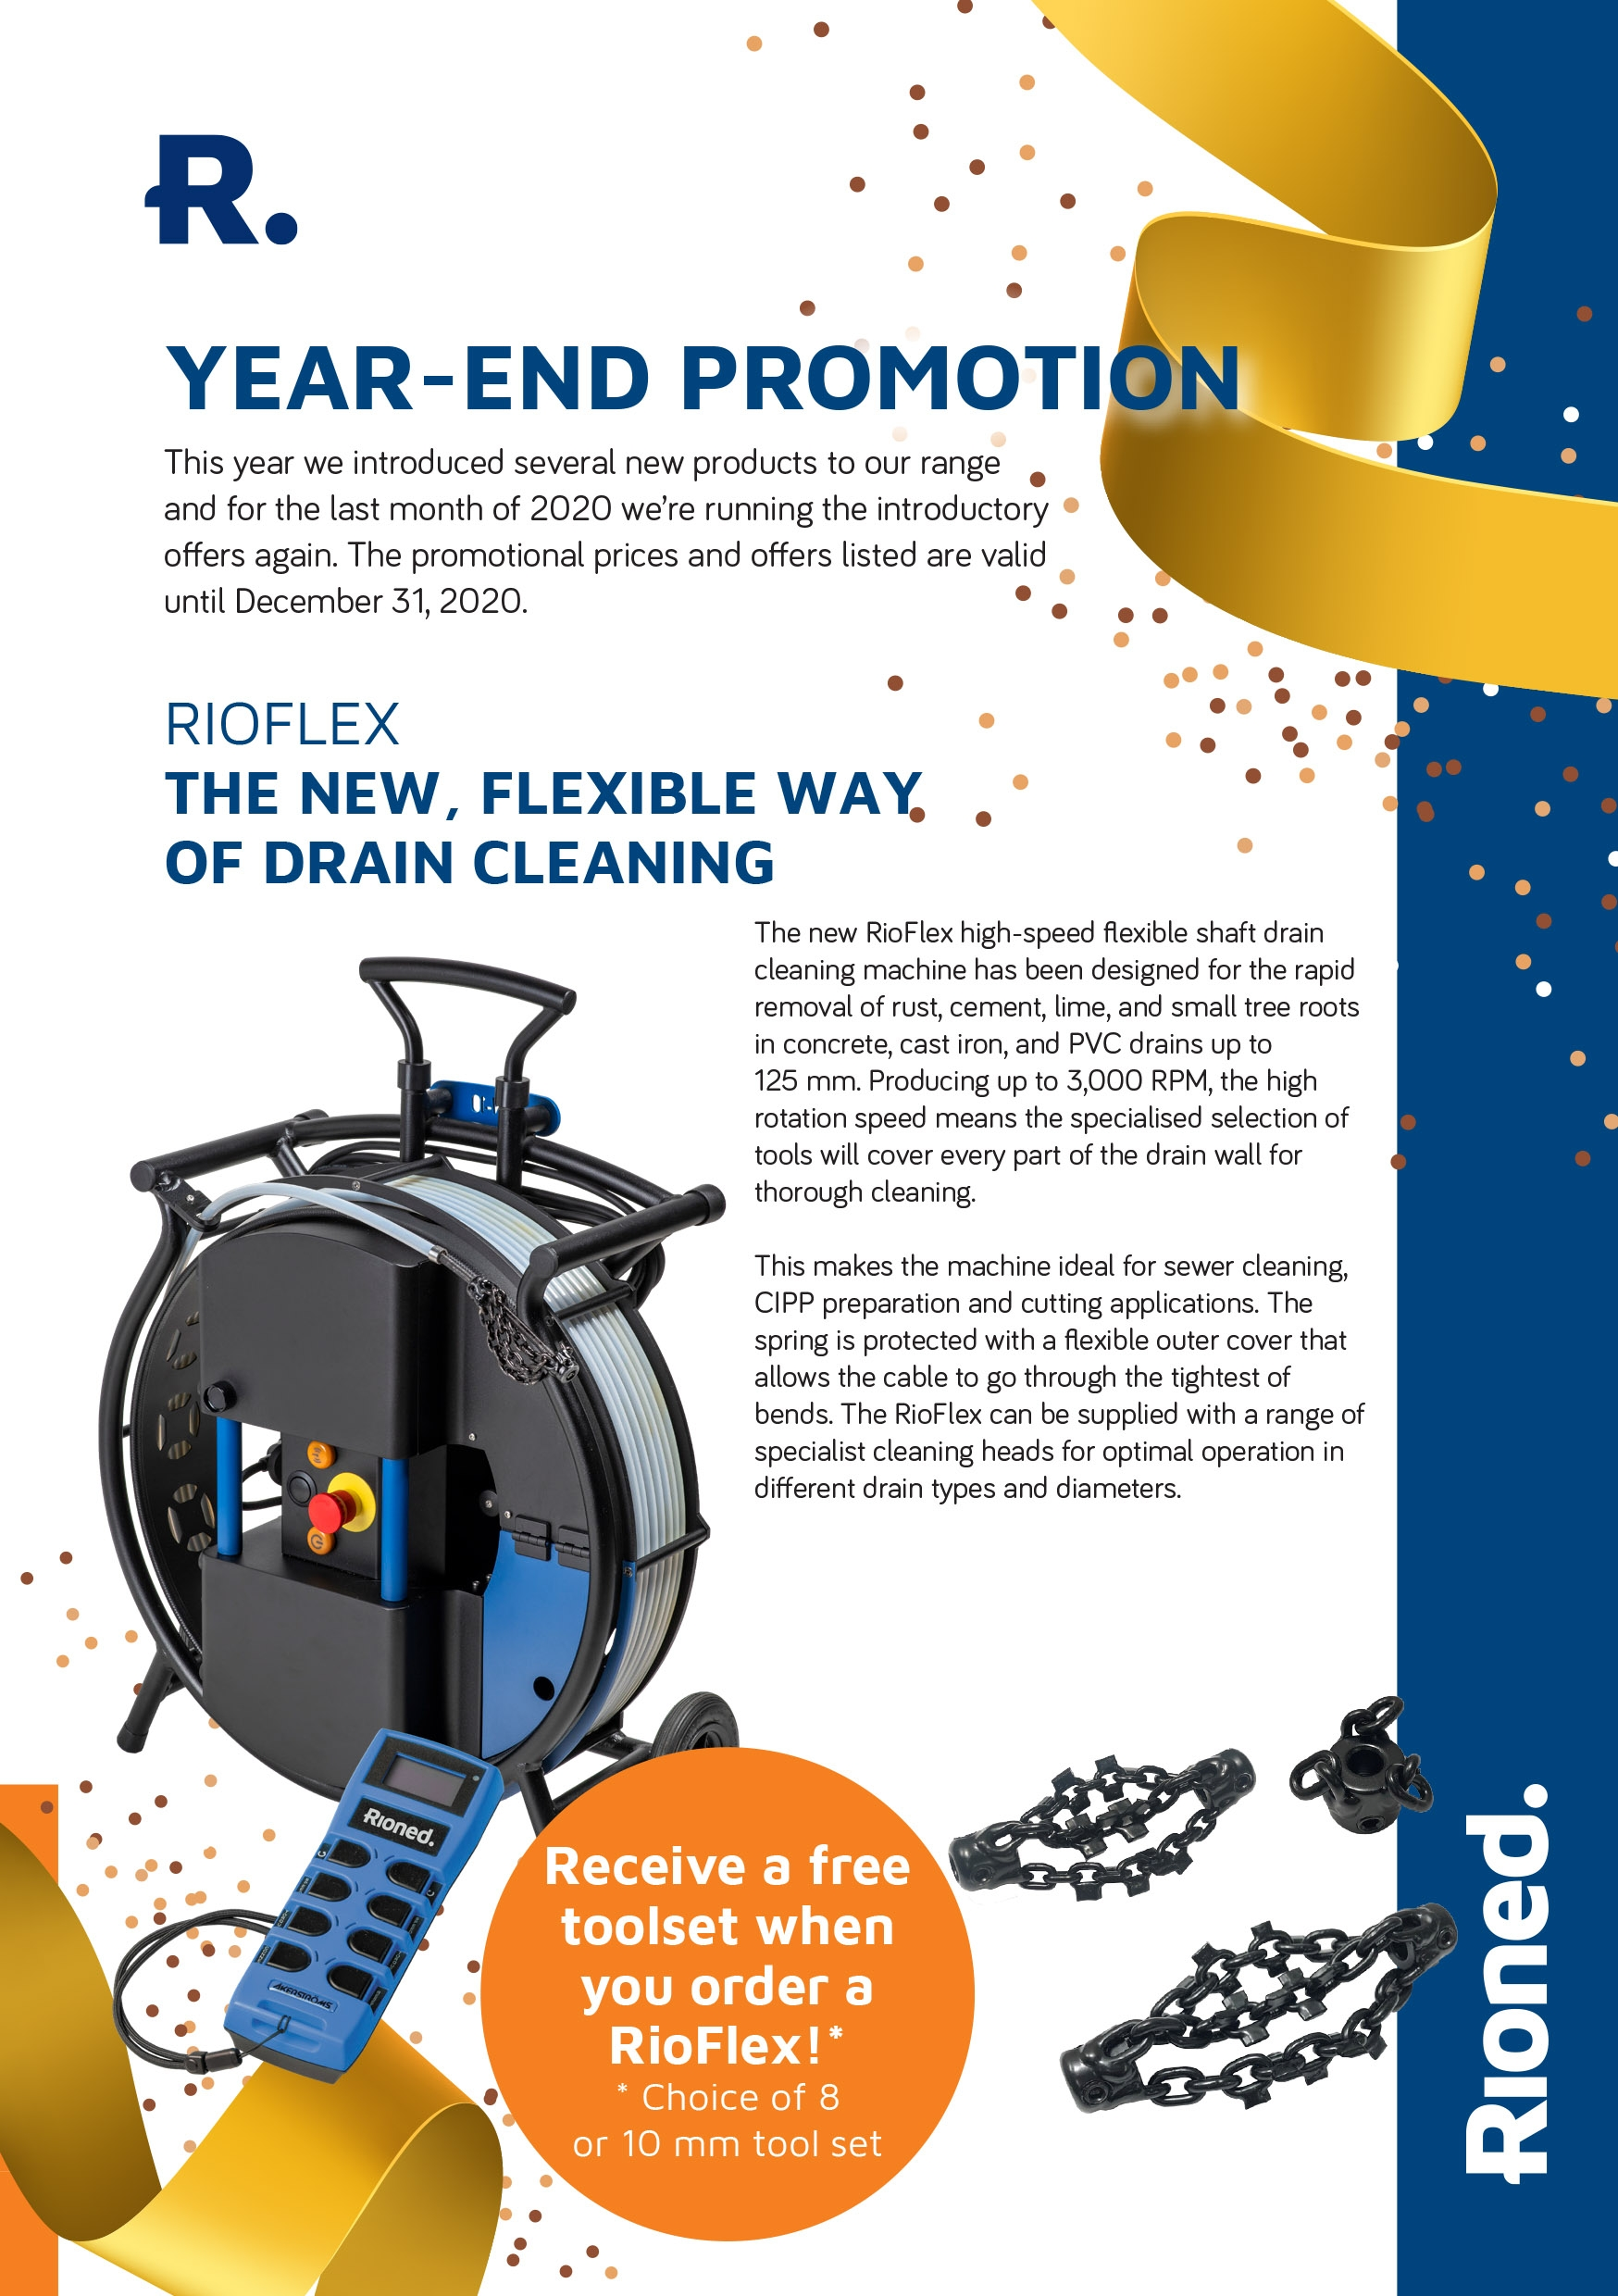 Rioned year-end promotion